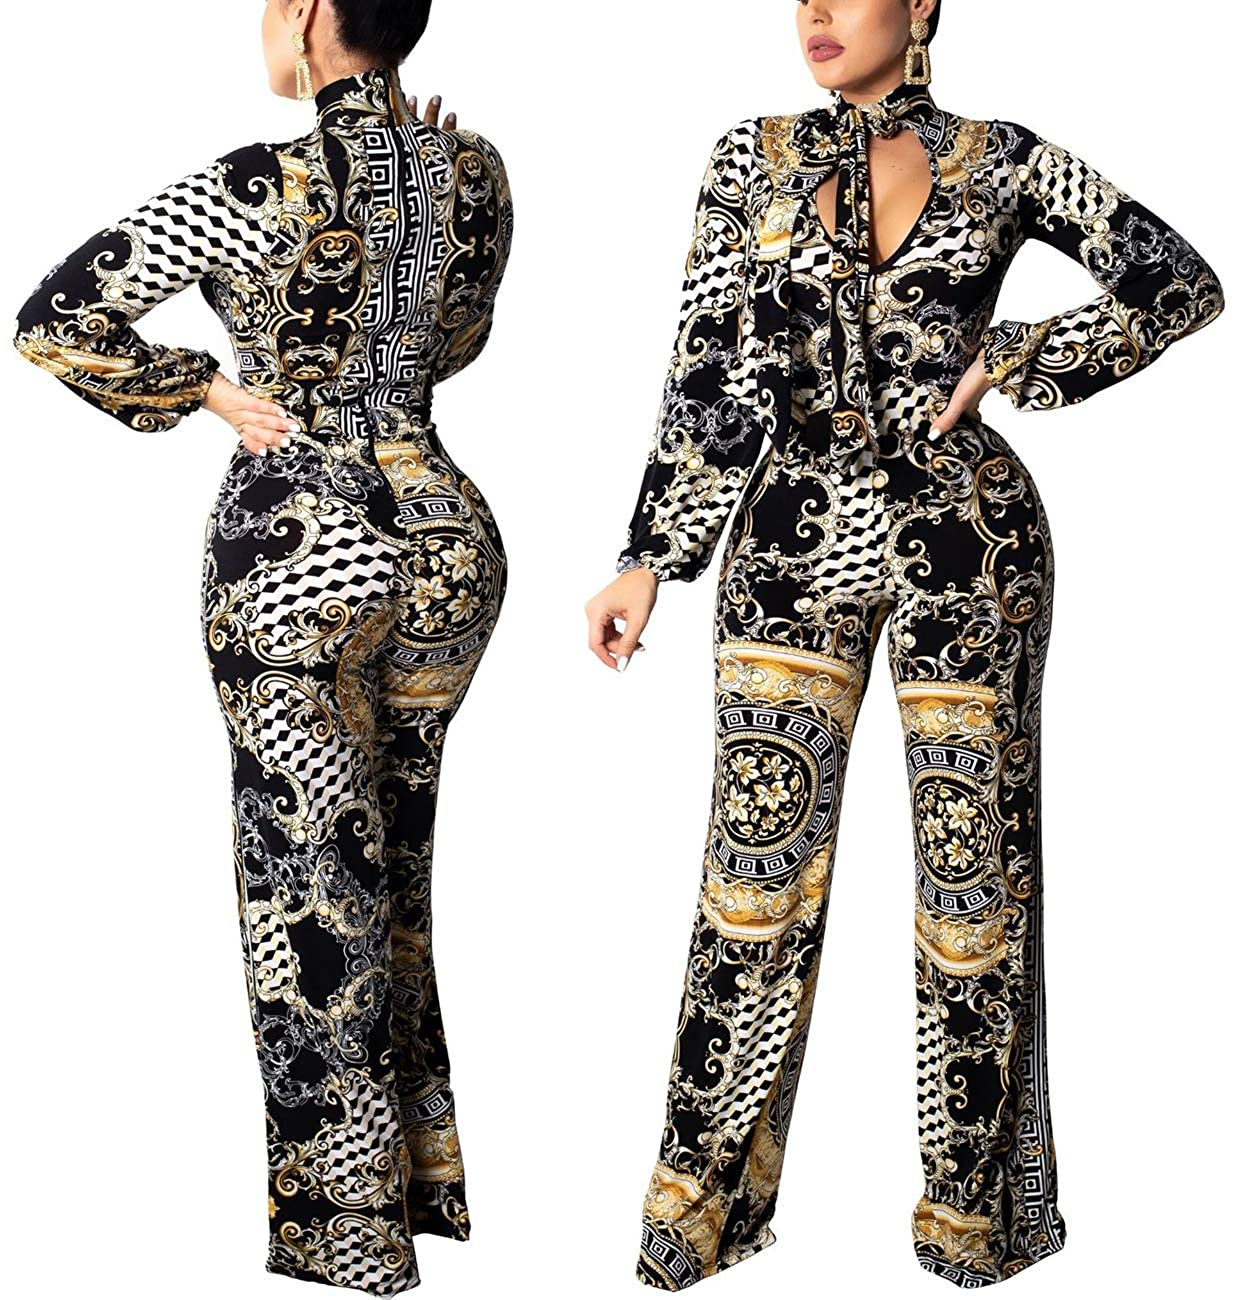 377796e6b55 Amazon.com  Women Sexy Jumpsuits Casual Turtleneck Short Sleeve Floral  Palazzo Wide Leg Loose Long Pants Comfy Party Club Waistband  Clothing